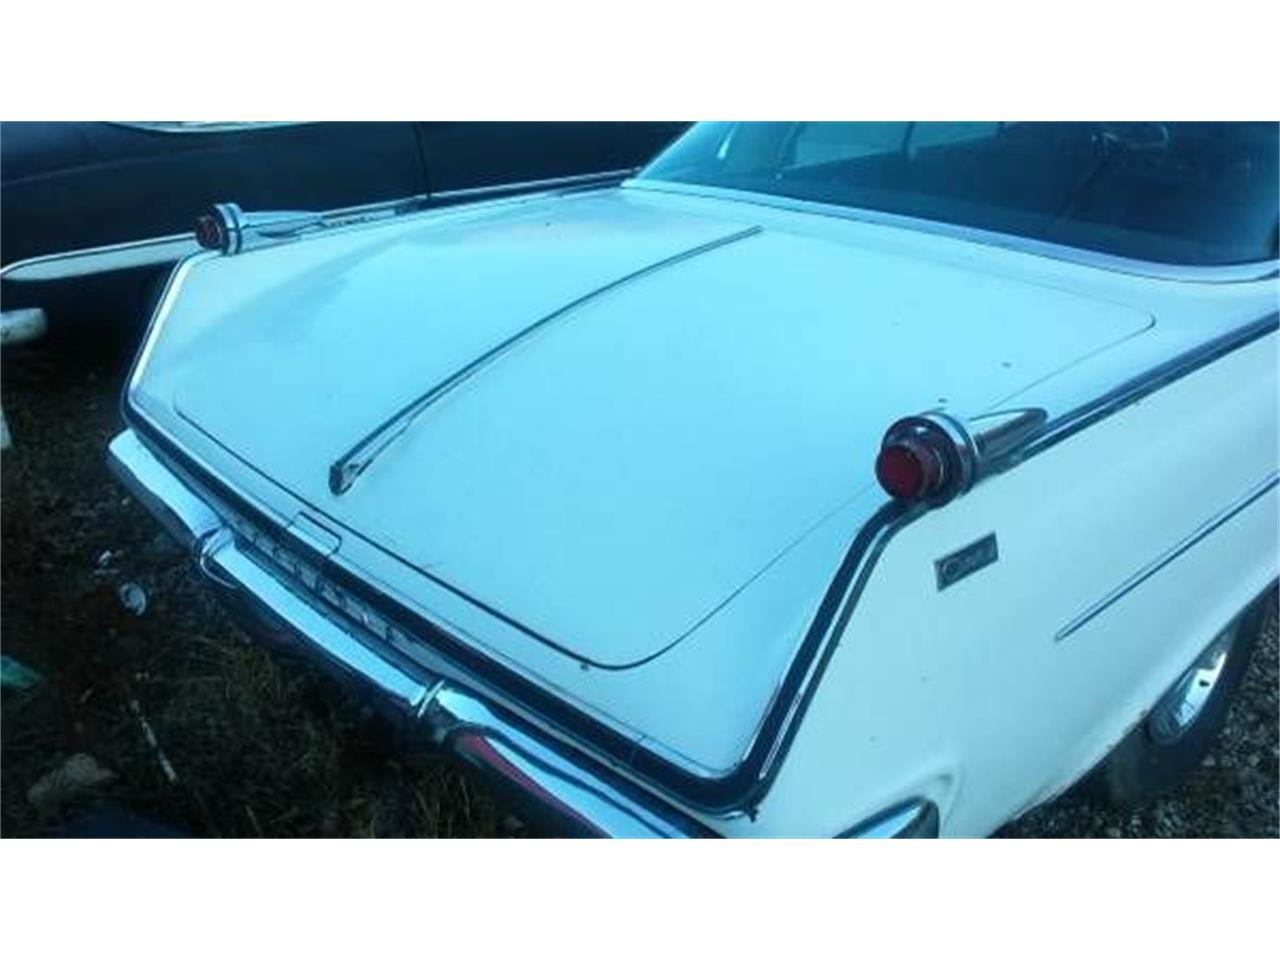 1952 1962 Chrysler Imperial Crown For Sale (picture 3 of 6)